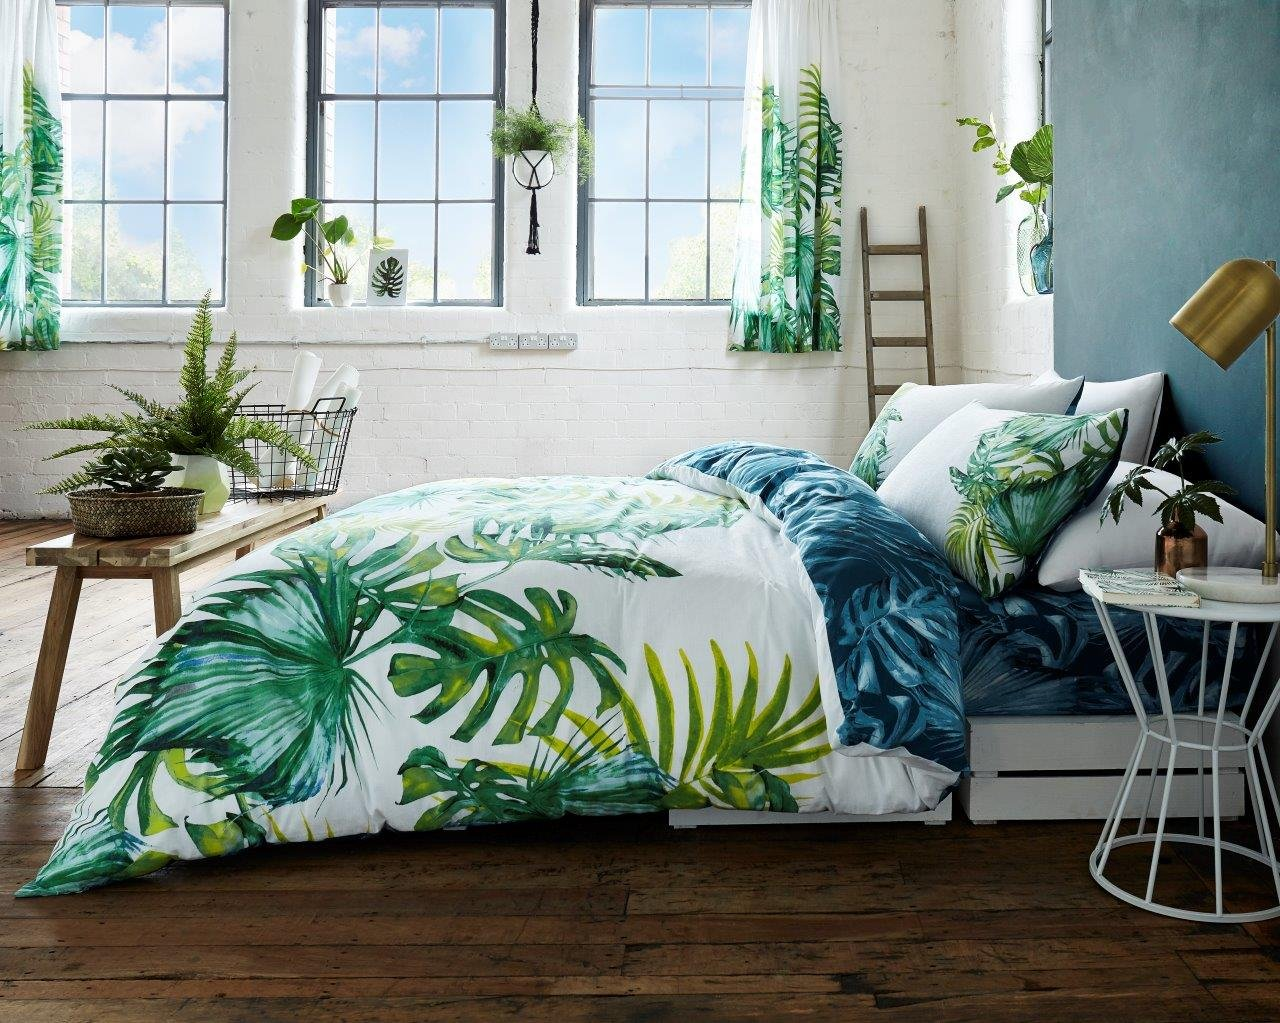 Gaveno Cavailia Luxury TROPICAL LEAF Bed Set with Duvet Cover and Pillow Case, Polyester-Cotton, Green, Double Gaveno Cavalia 11131588